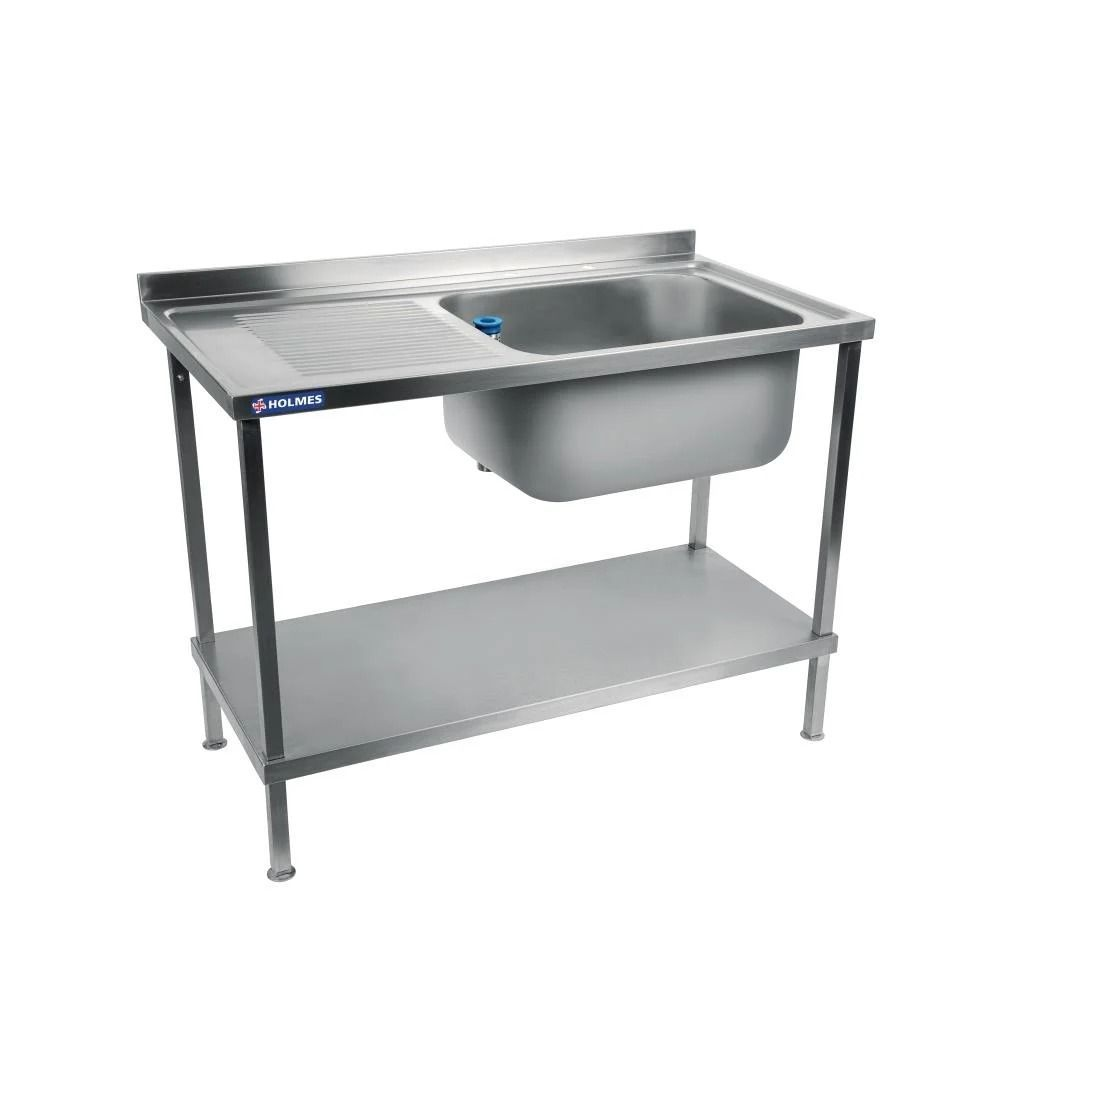 Holmes Fully Assembled Stainless Steel Sink Left Hand Drainer 1200mm - DR383